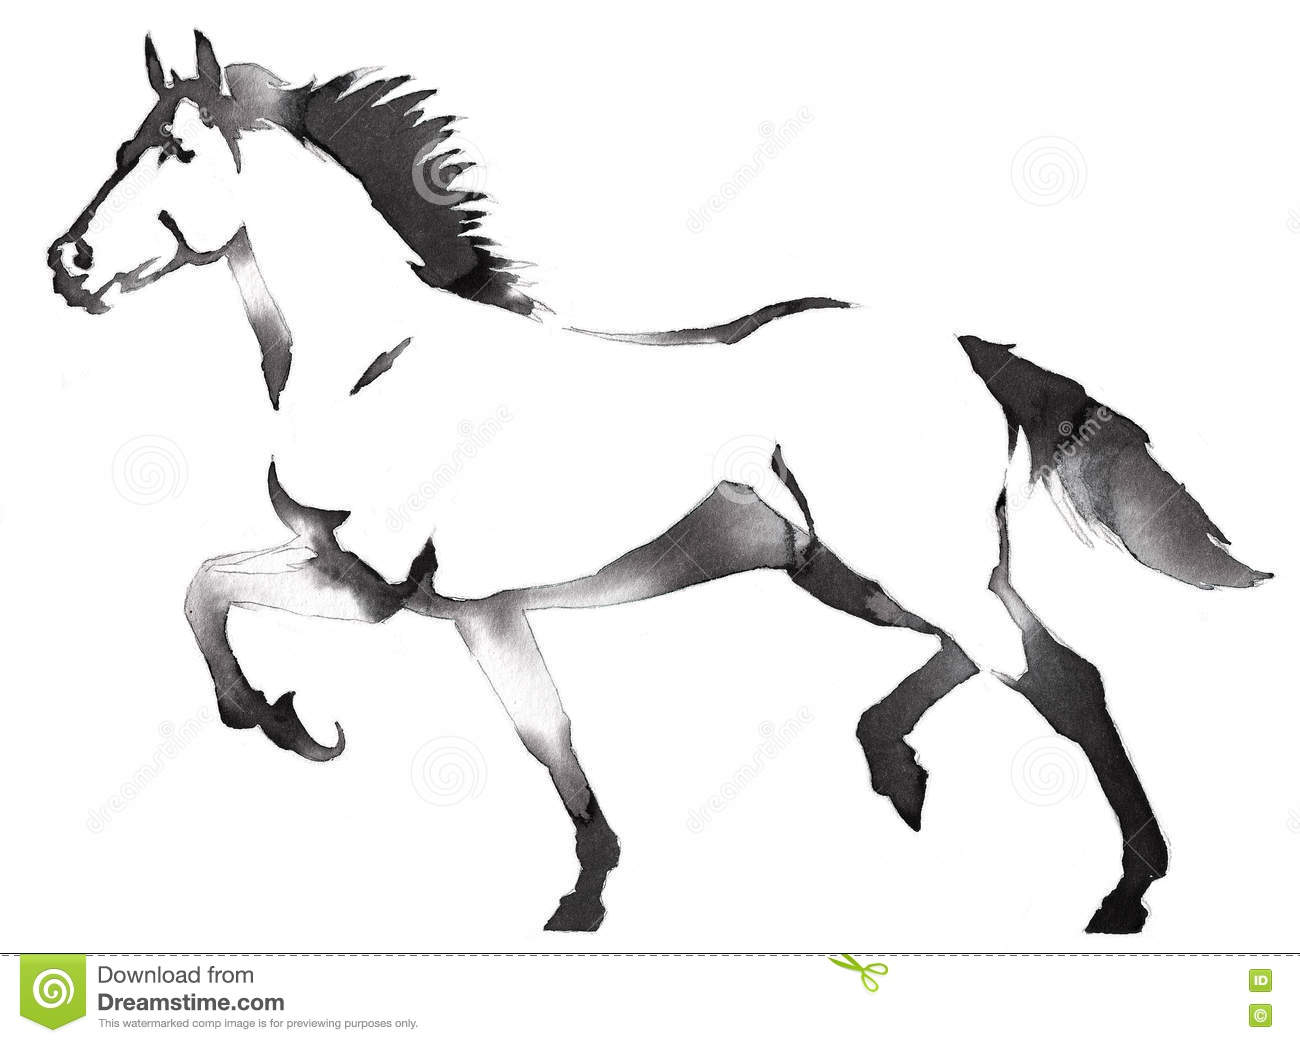 Black And White Monochrome Painting With Water And Ink Draw Horse Illustration Stock Illustration Illustration Of Etching Graphic 81792392